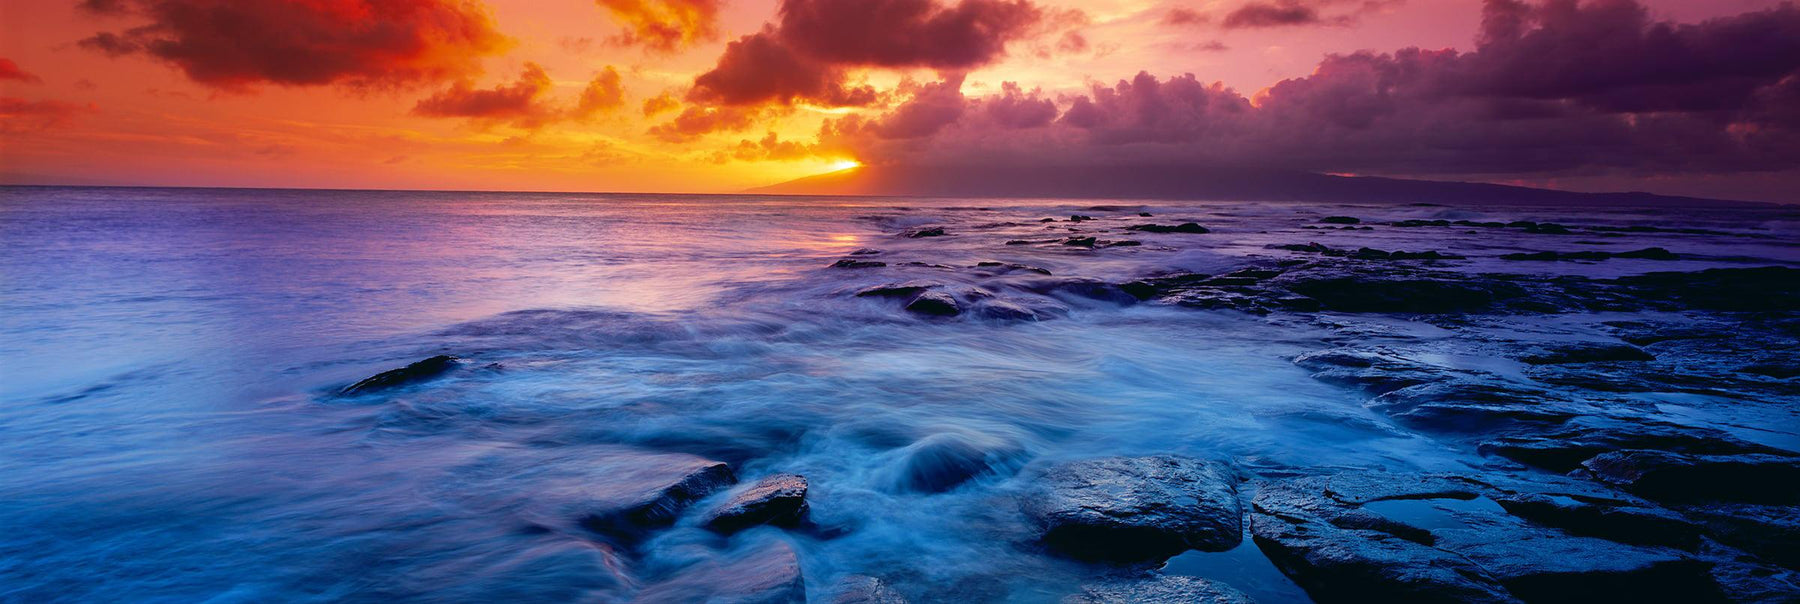 Waves washing over the black rock coast of Kapalua Bay Hawaii at sunset